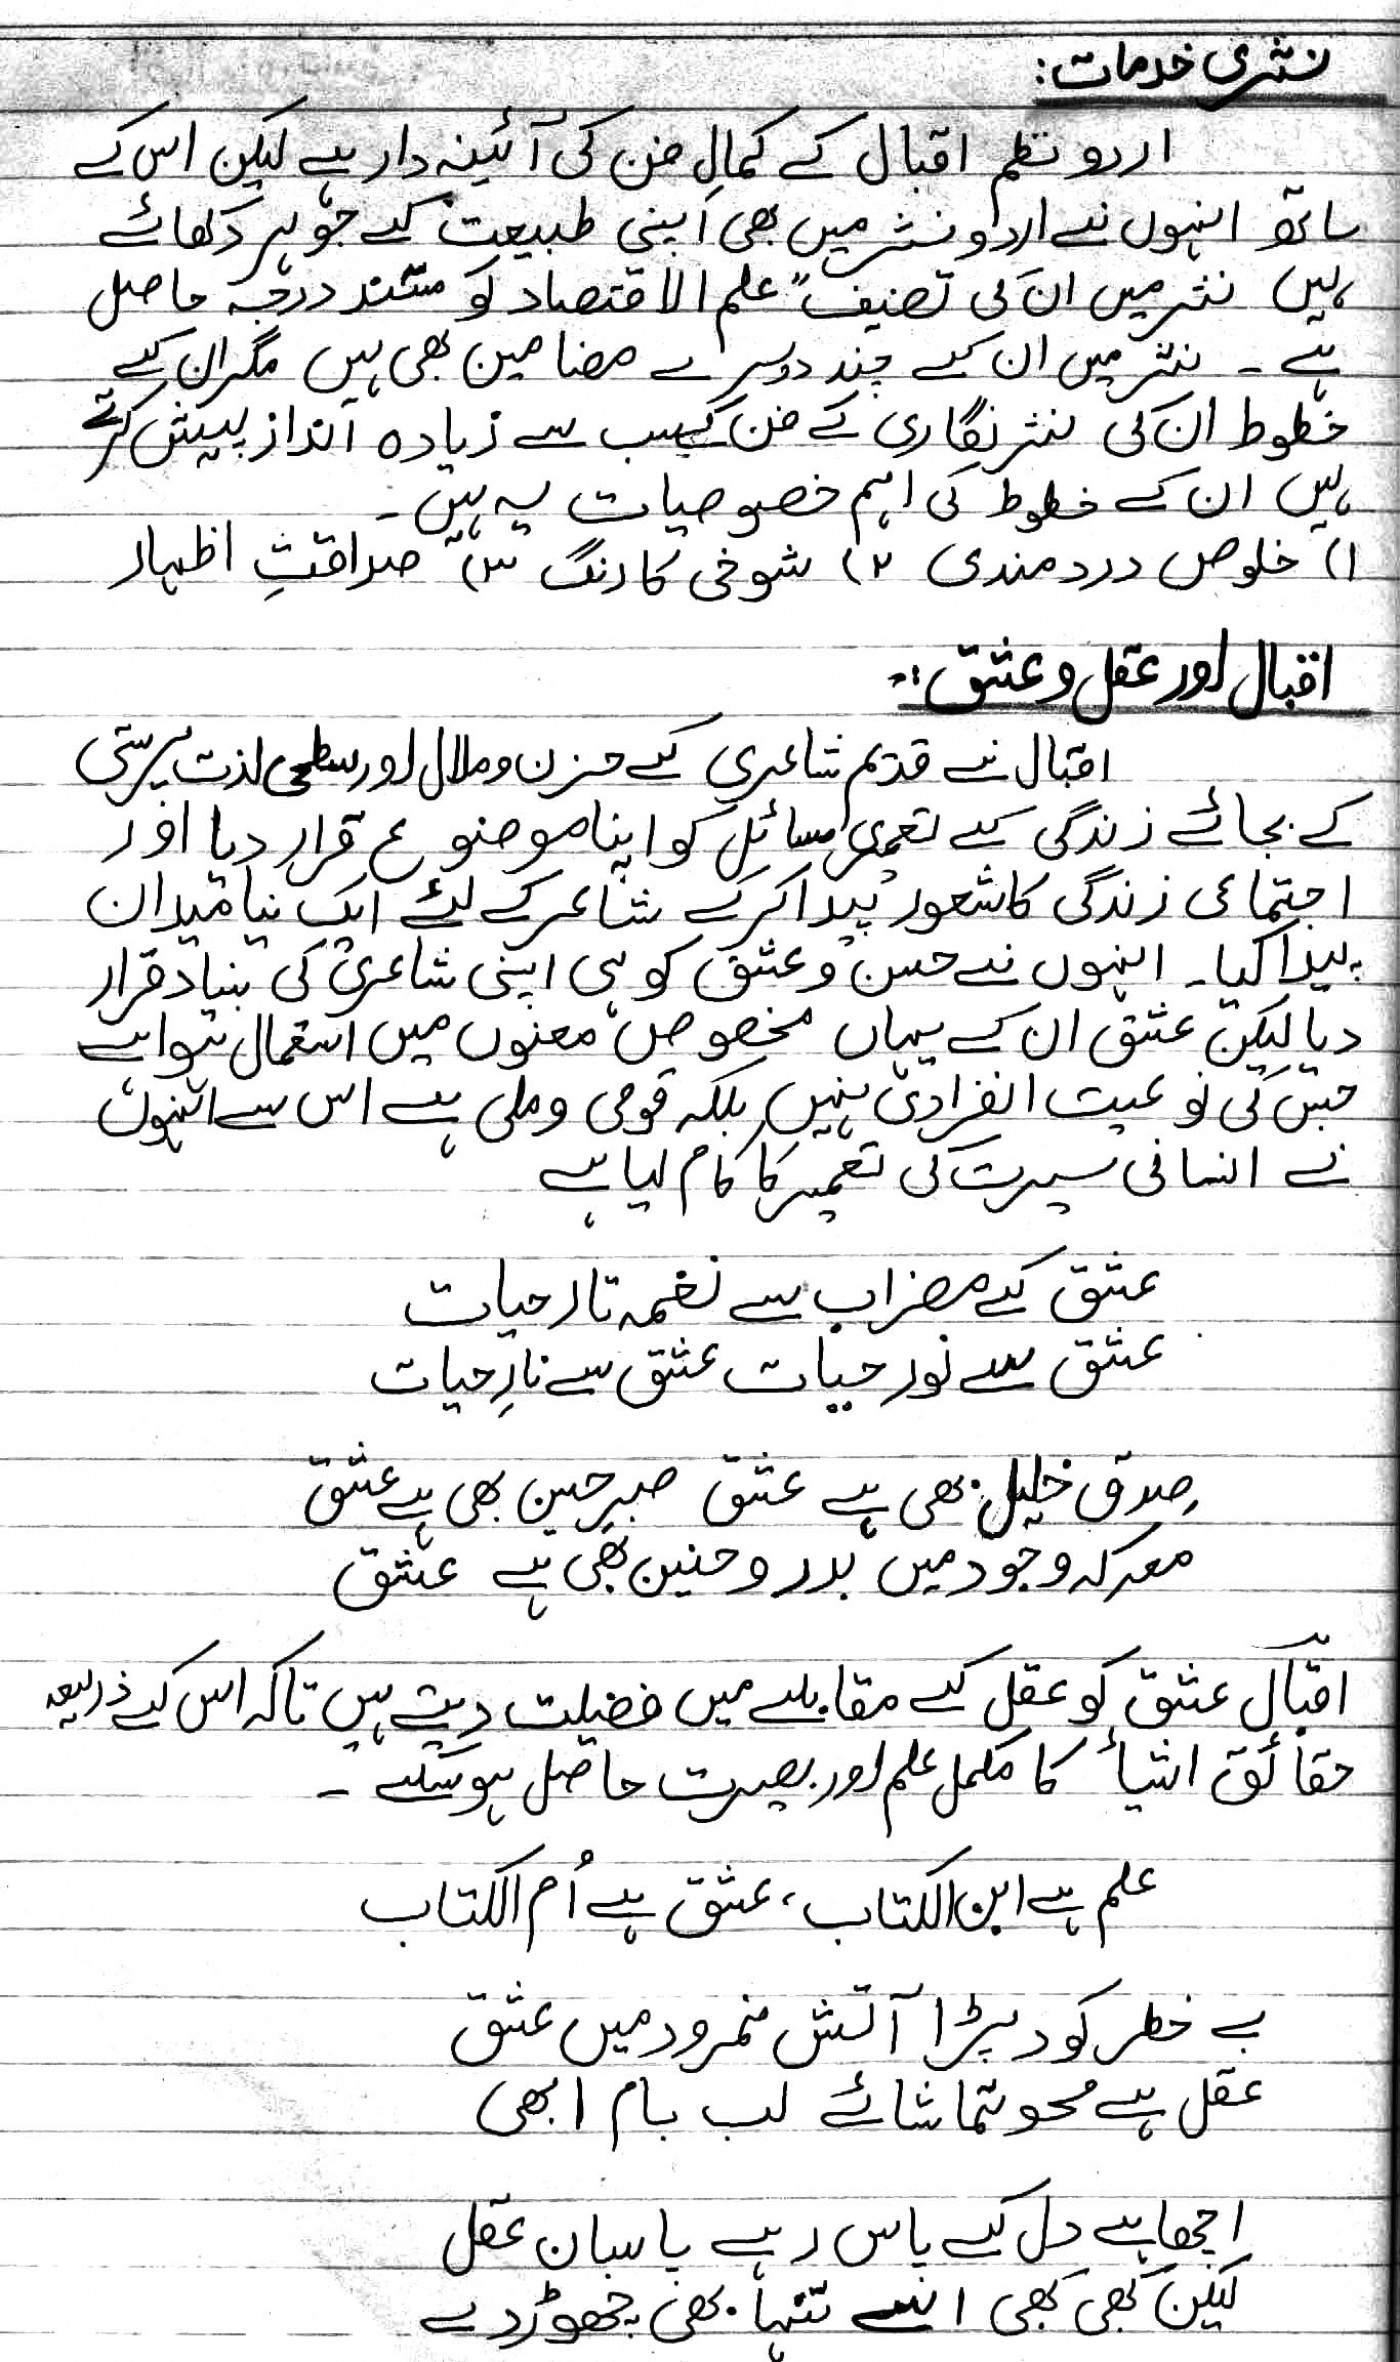 005 Urdu Essay Allama Iqbal Jpg Dreaded On In For Class 10 With Poetry Ka Shaheen Headings And 1400